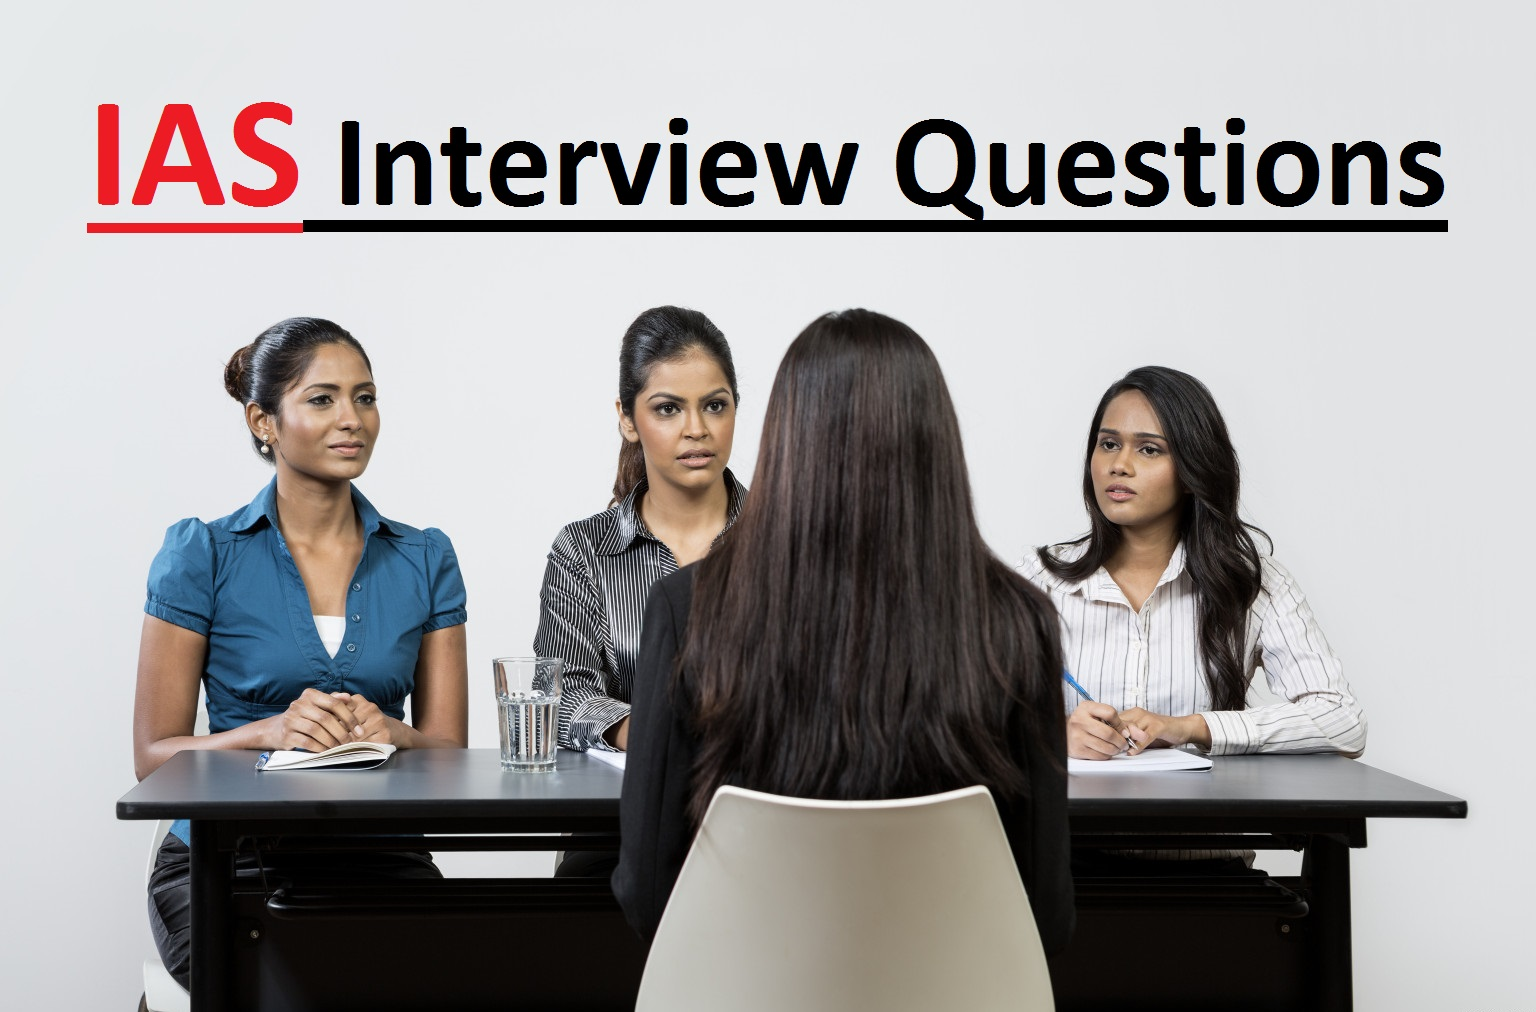 ias interview questions 100 % genuine questions asked in upsc exam interviews upsc tips